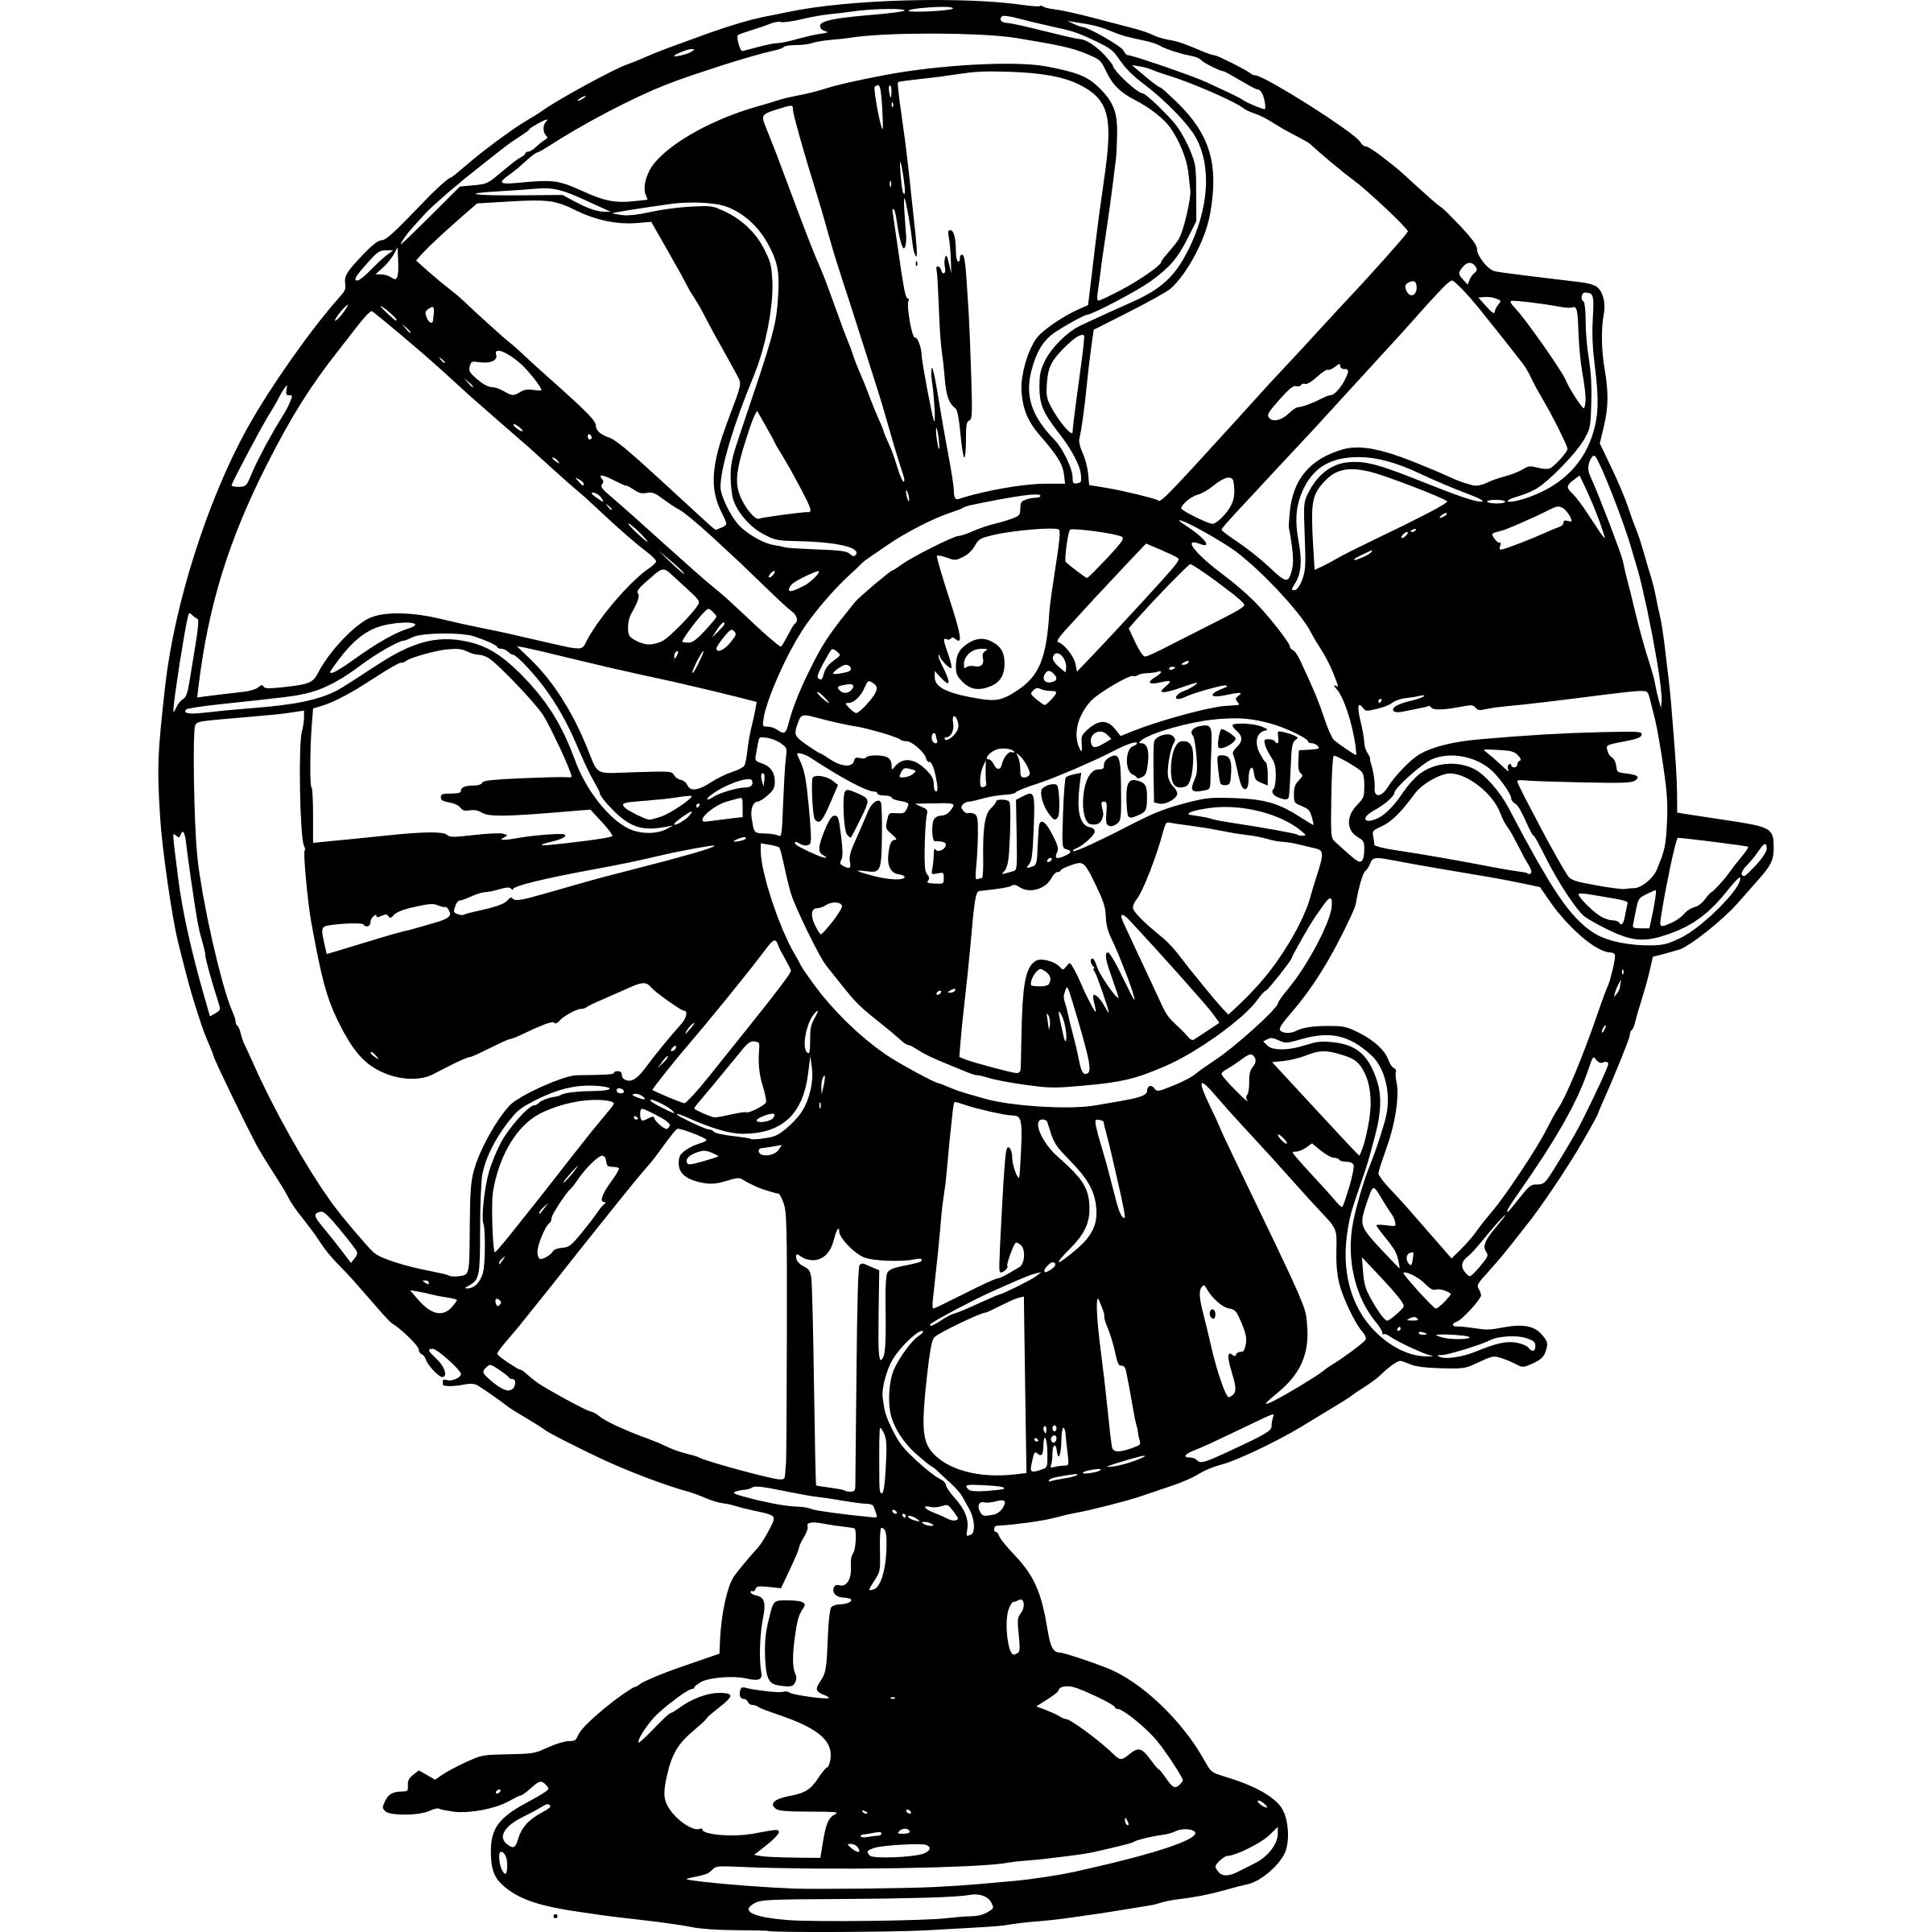 Episode 1's cover: a large tabletop fan.